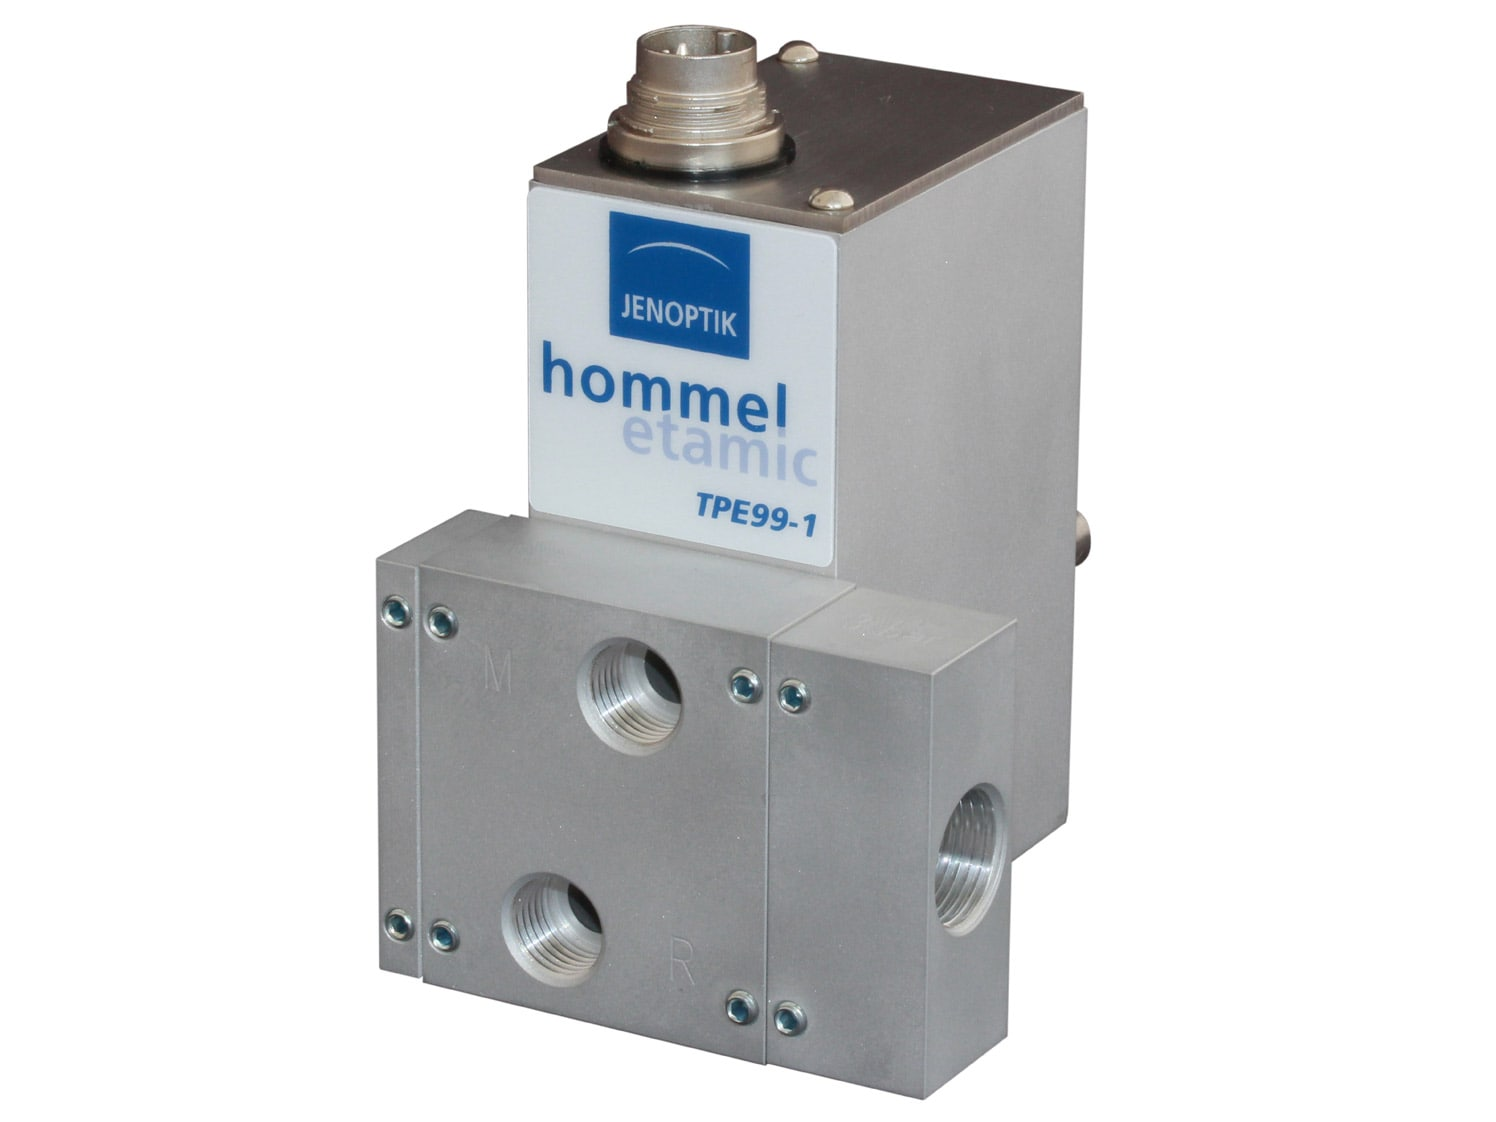 The Hommel-Etamic TPE99 forms the core element of our pneumatic measuring systems